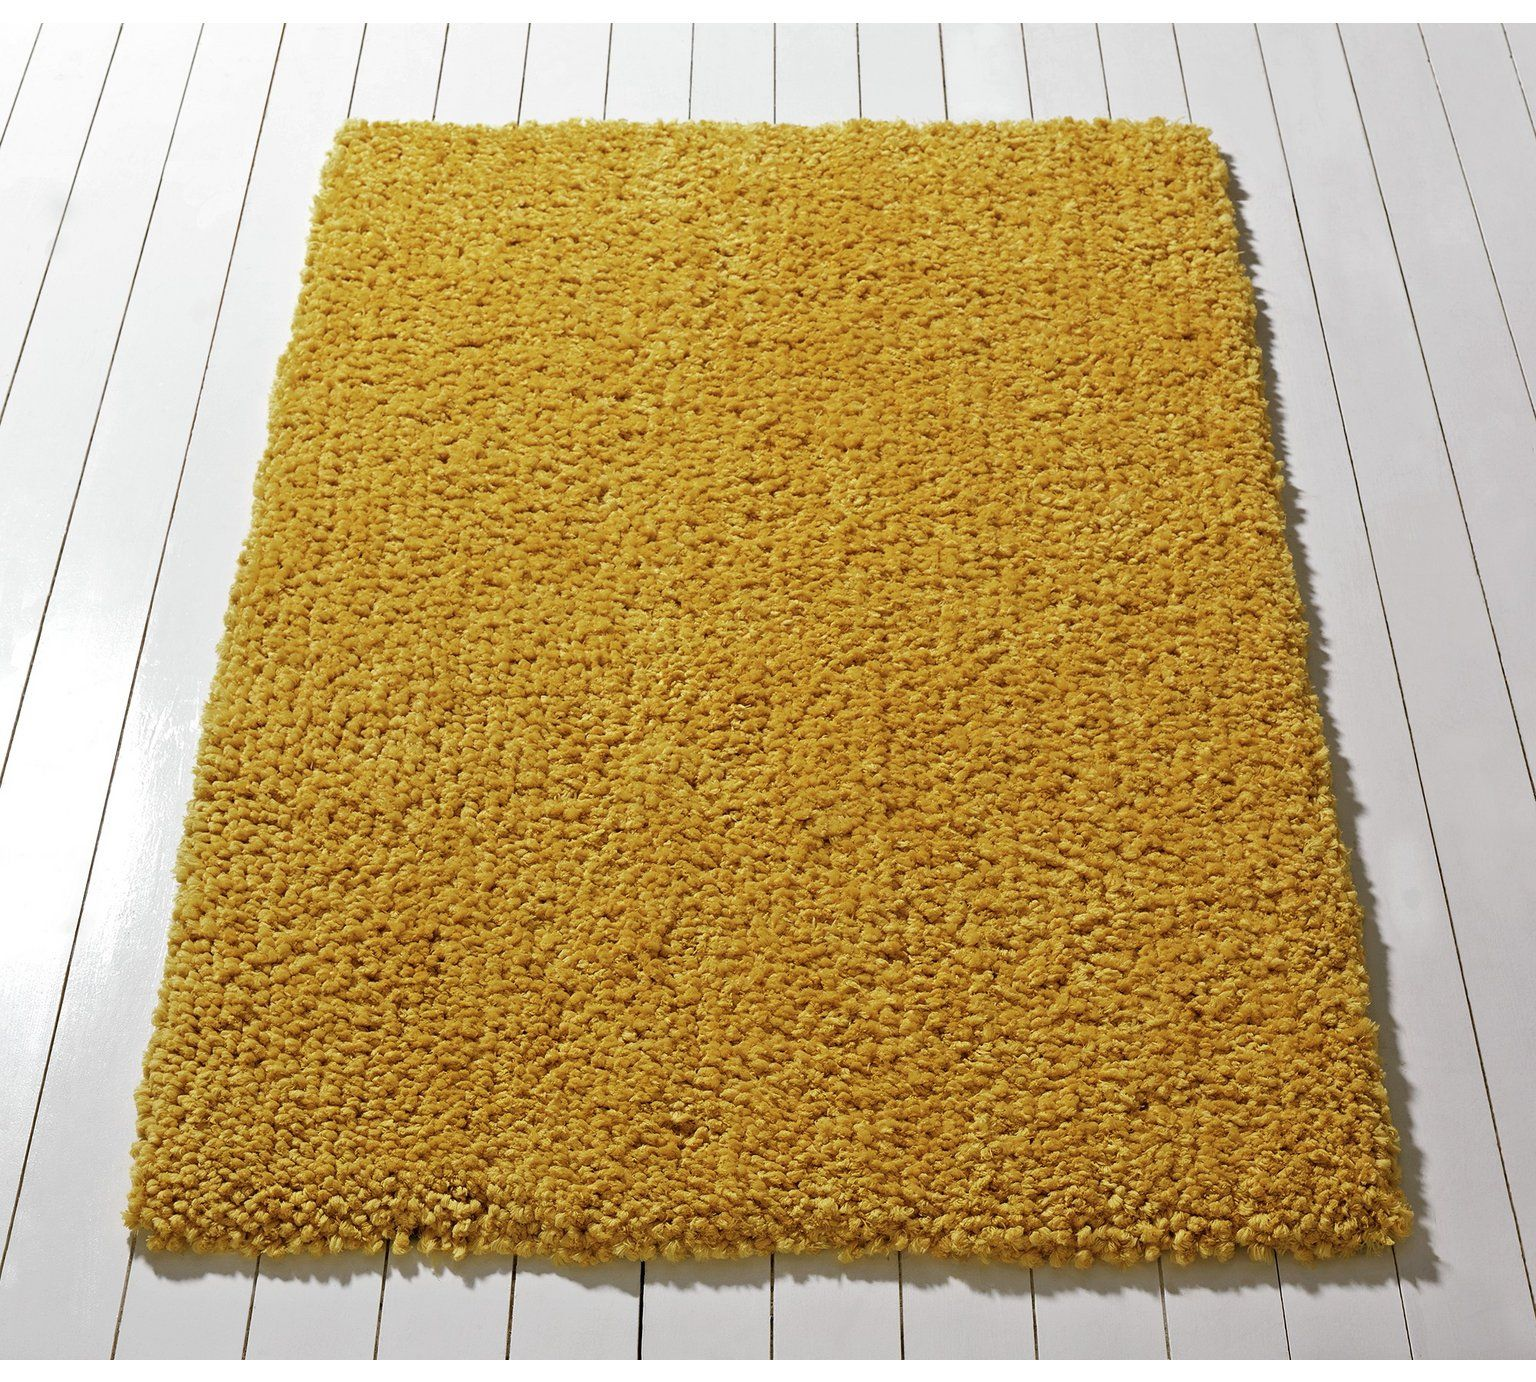 Buy Collection Flump Shaggy Rug 170x110cm Ochre At Argos Co Uk Visit Argos Co Uk To Shop Online For Rugs And Mats Home Furn Rugs And Mats Shaggy Rug Rugs